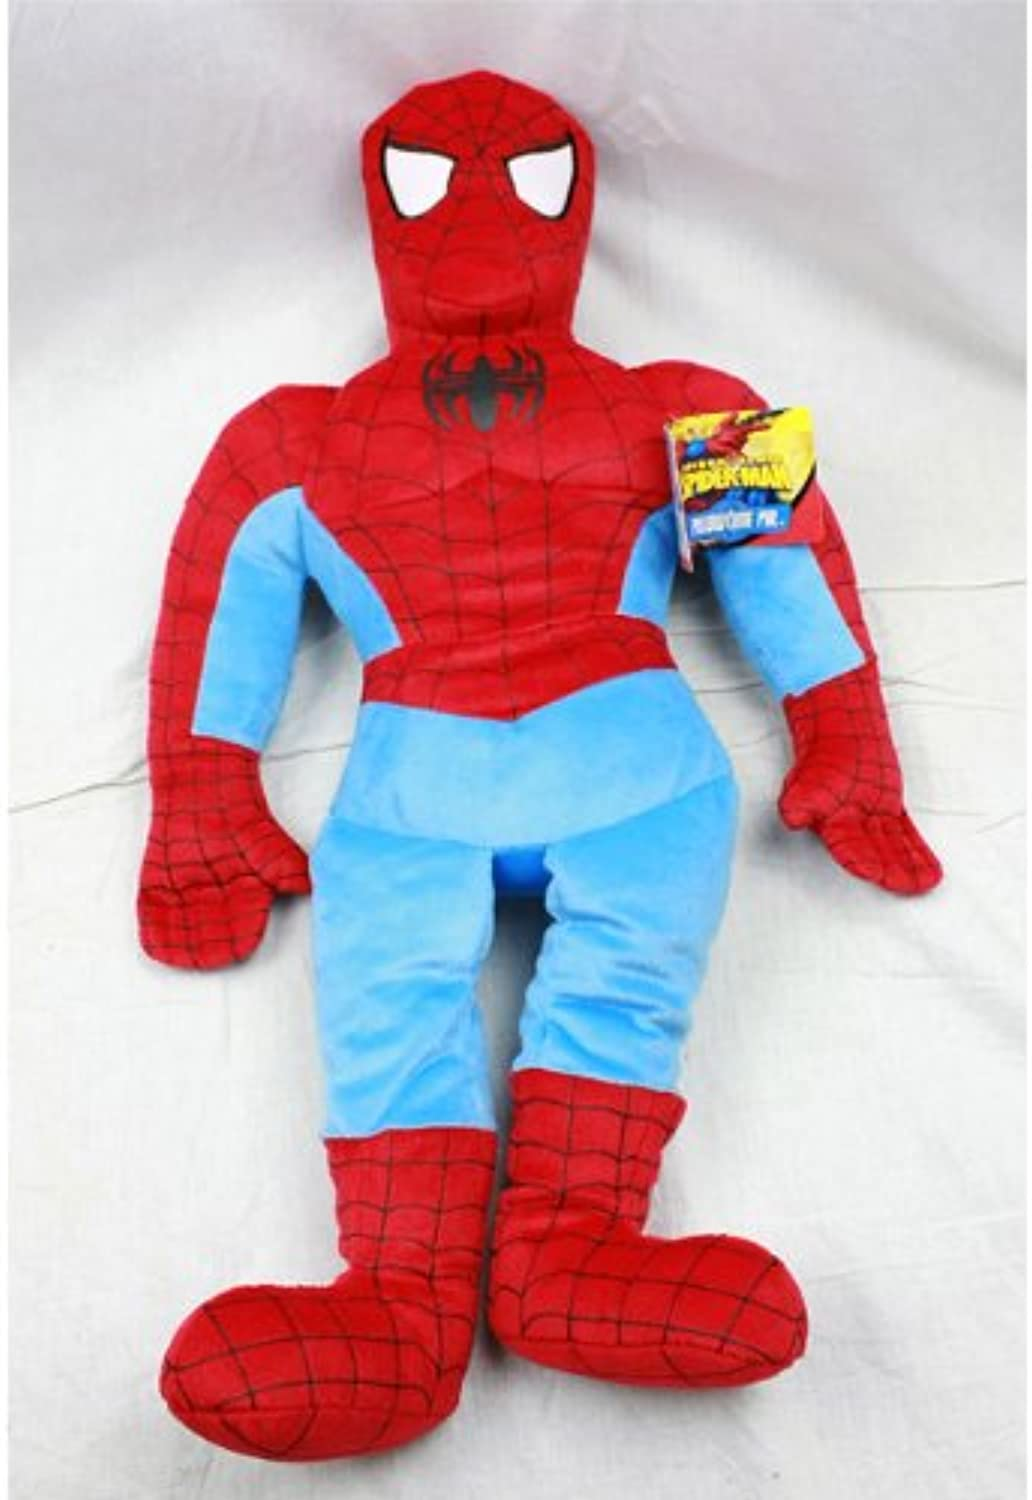 Spider-Man 25  Spiderman Pillowtime Pal Plush Toy Stuffed Cuddle Pillow